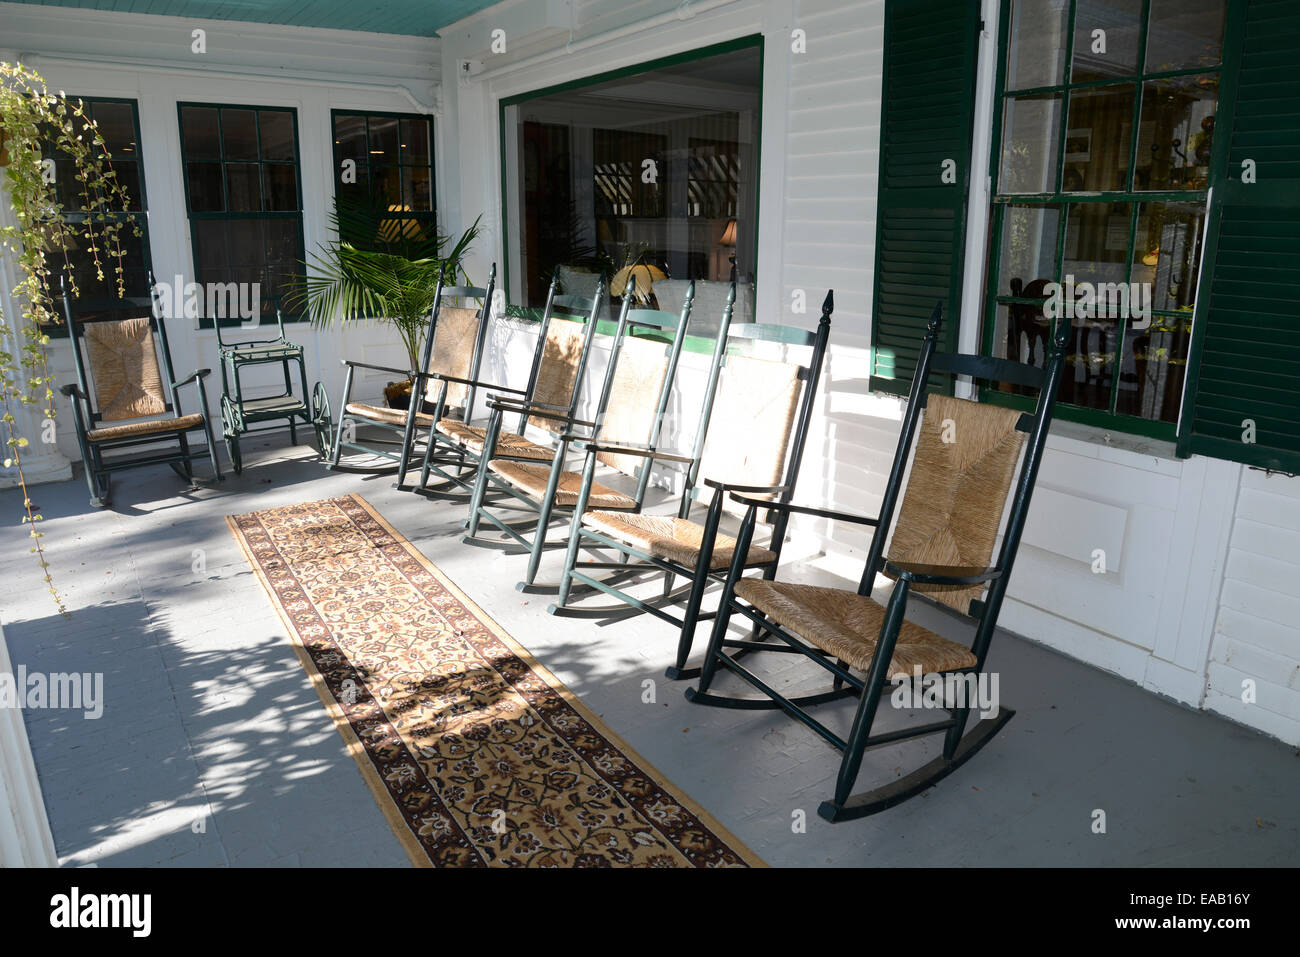 Many Wood And Wicker Rocking Chairs On A Large Outdoor Front Porch